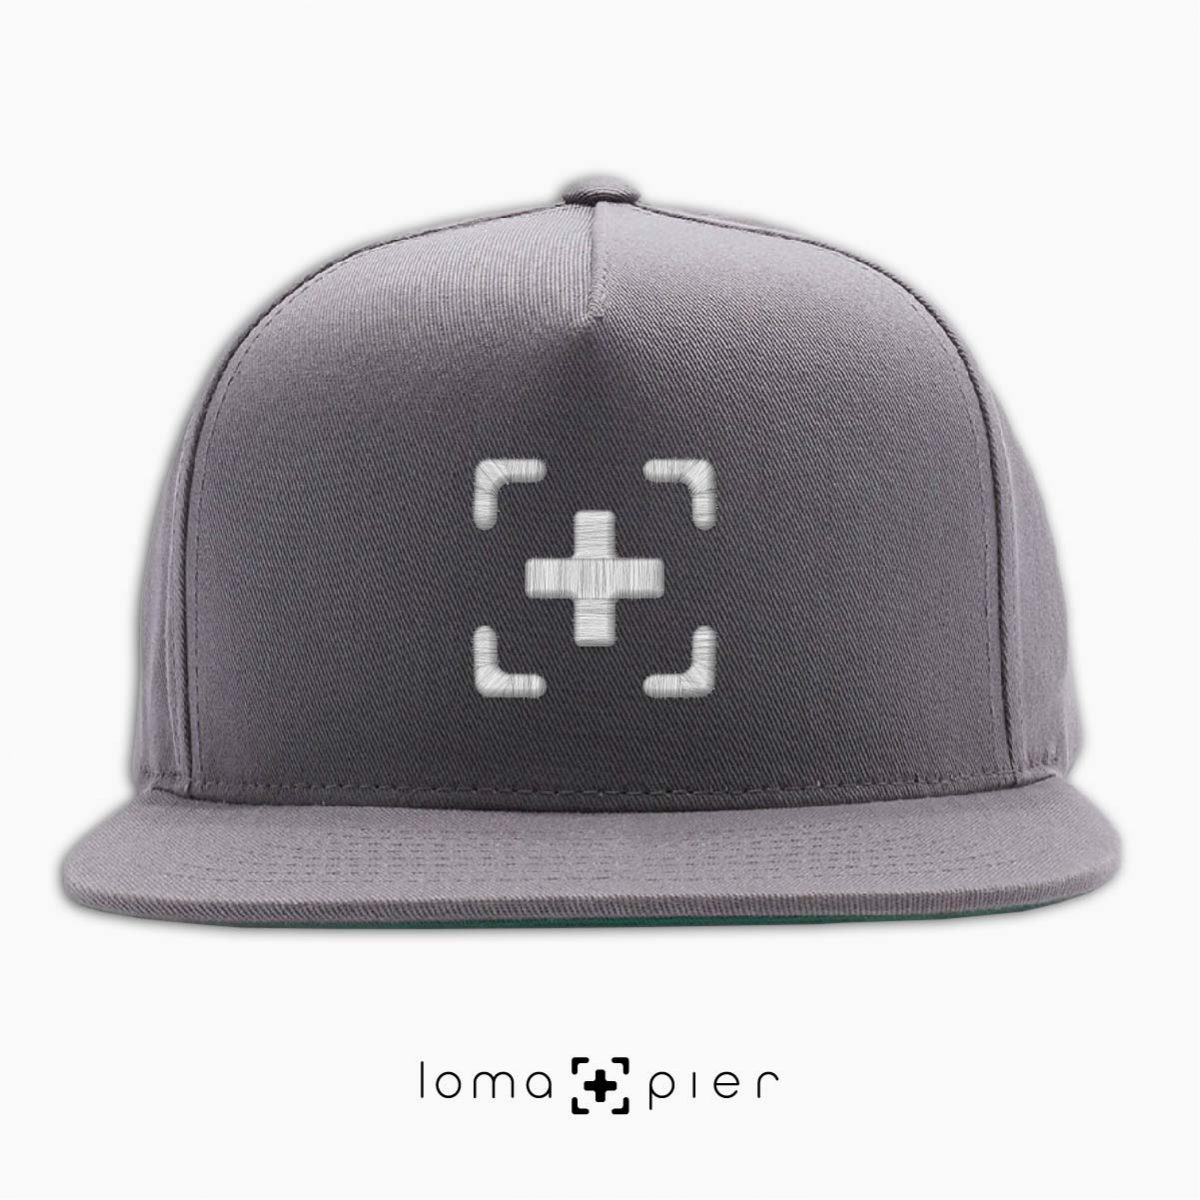 classic snapback cap in grey by loma+pier hat shop